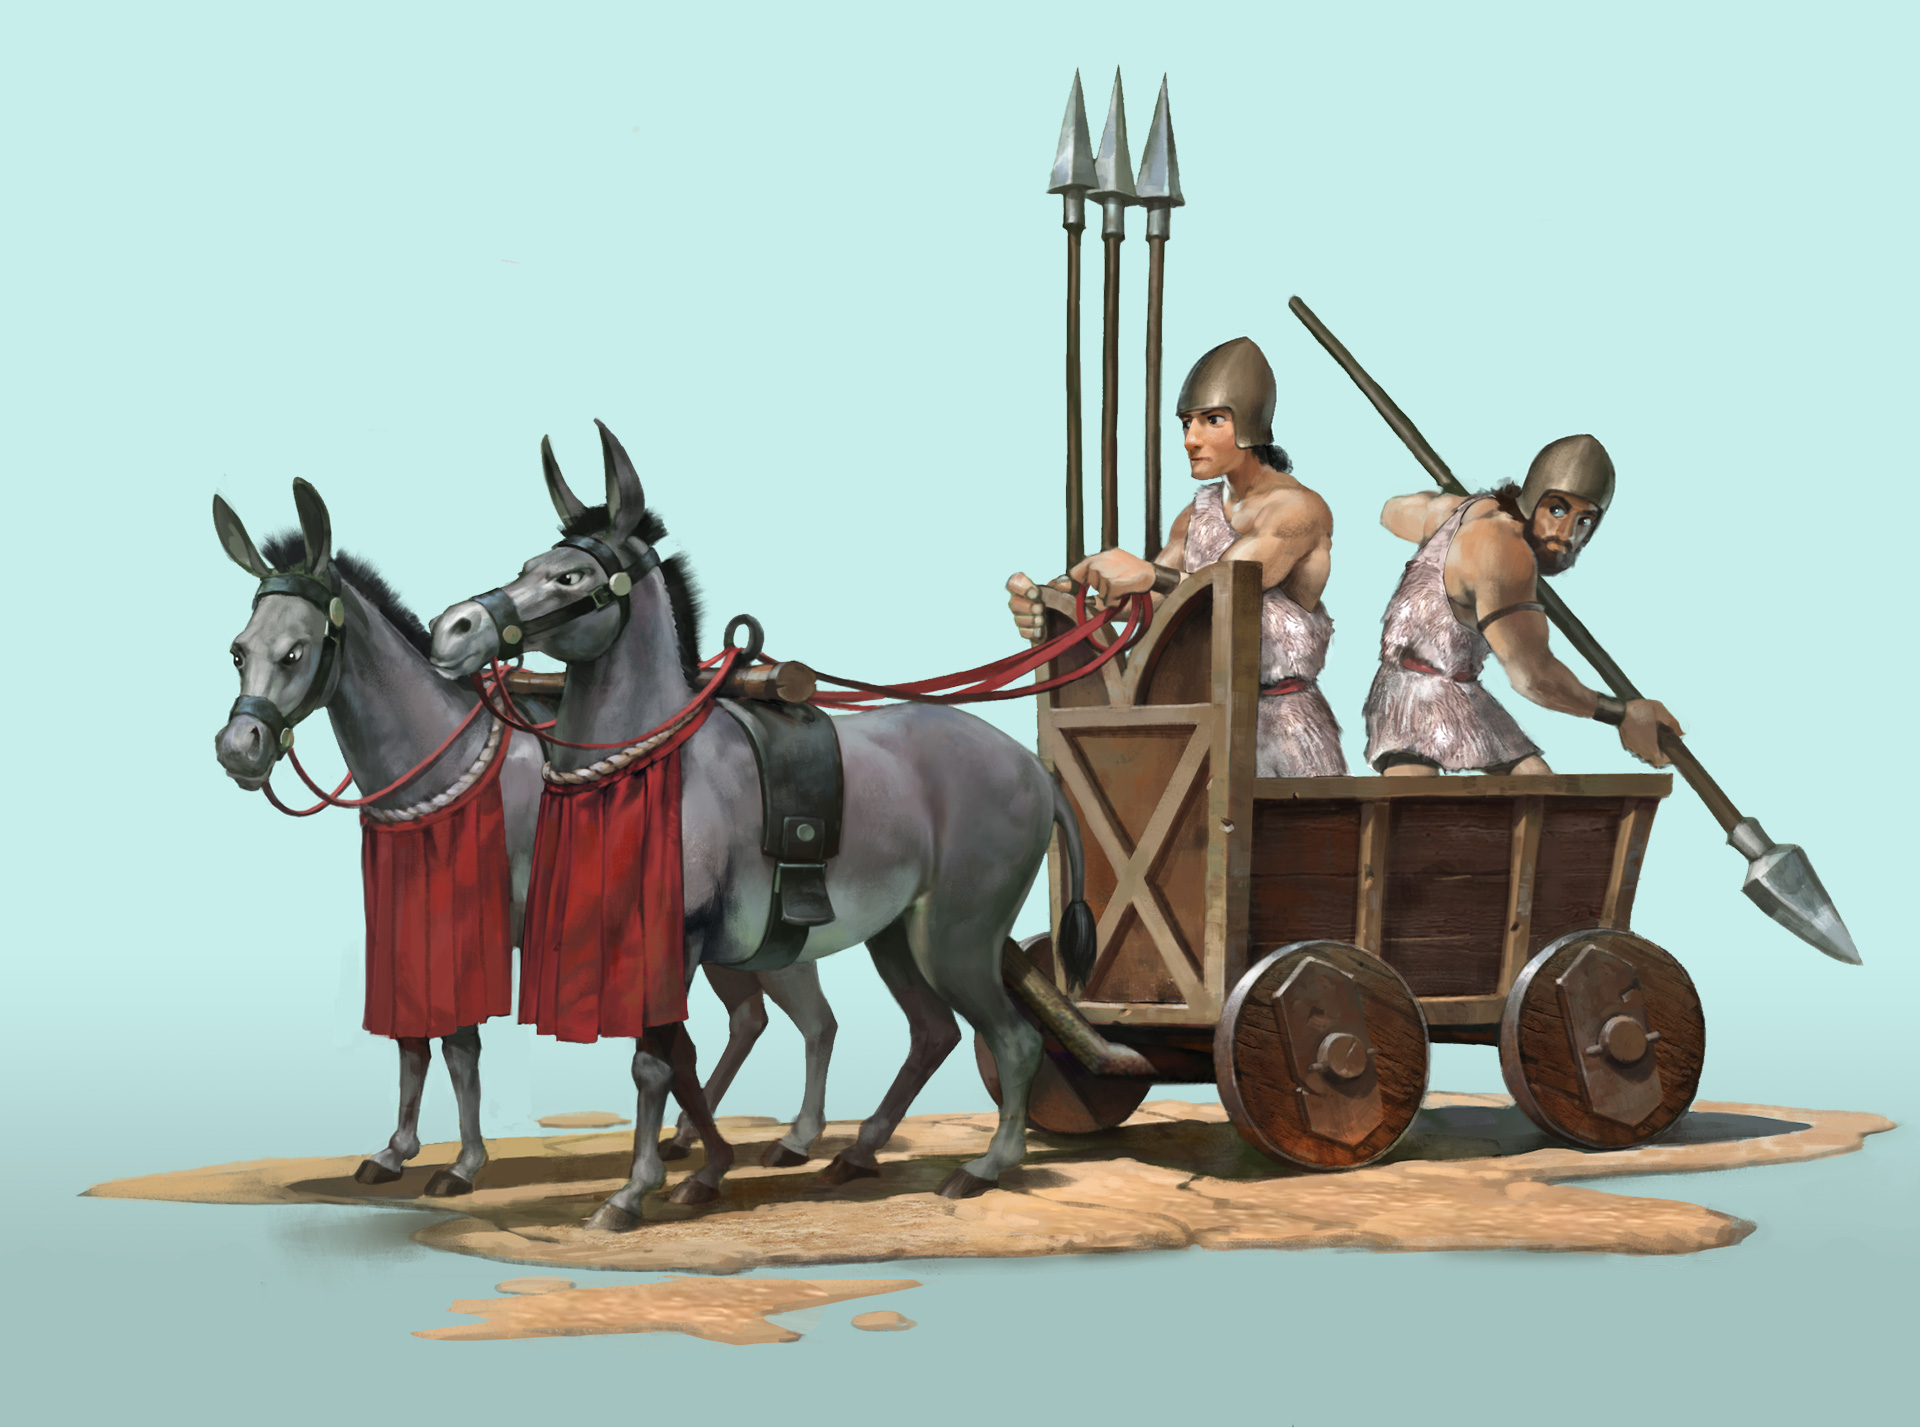 List of units in Civ6